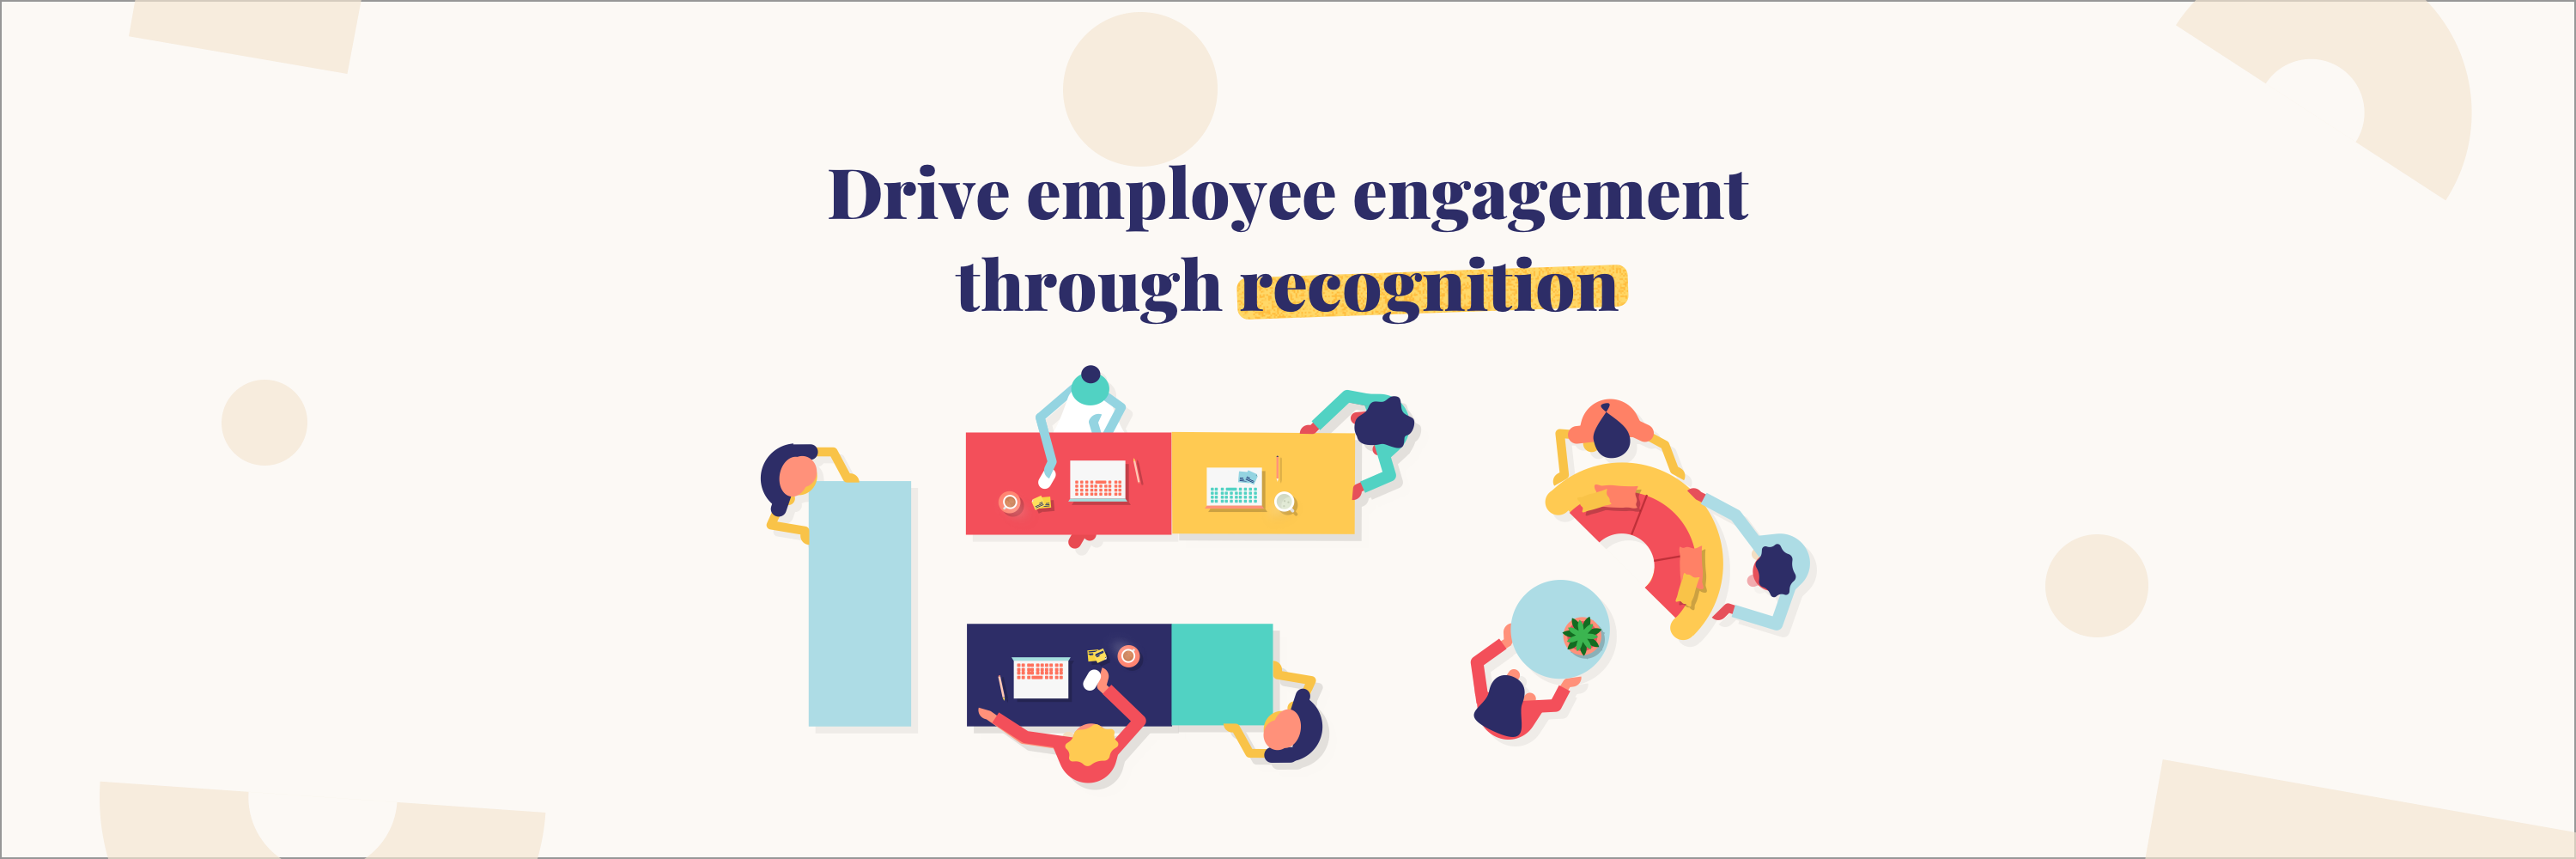 Review Briq: Empowering employees through feedback & recognition - Appvizer